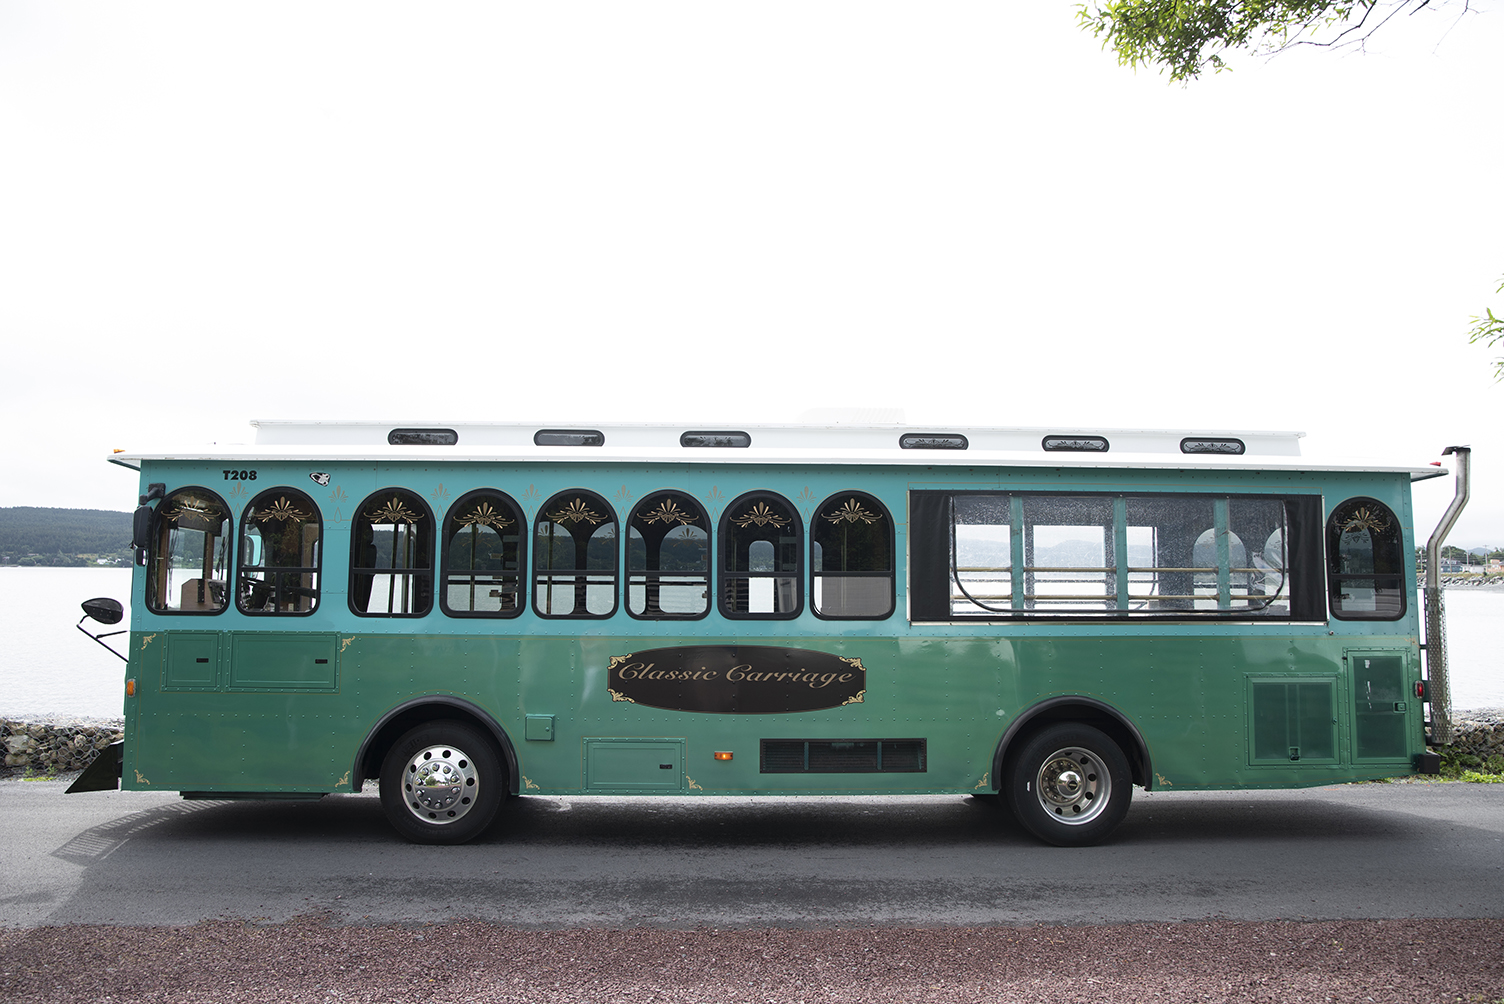 Classic Carriage green trolley, Tour Bus NL, Bus Transportation Newfoundland, St. John's tours